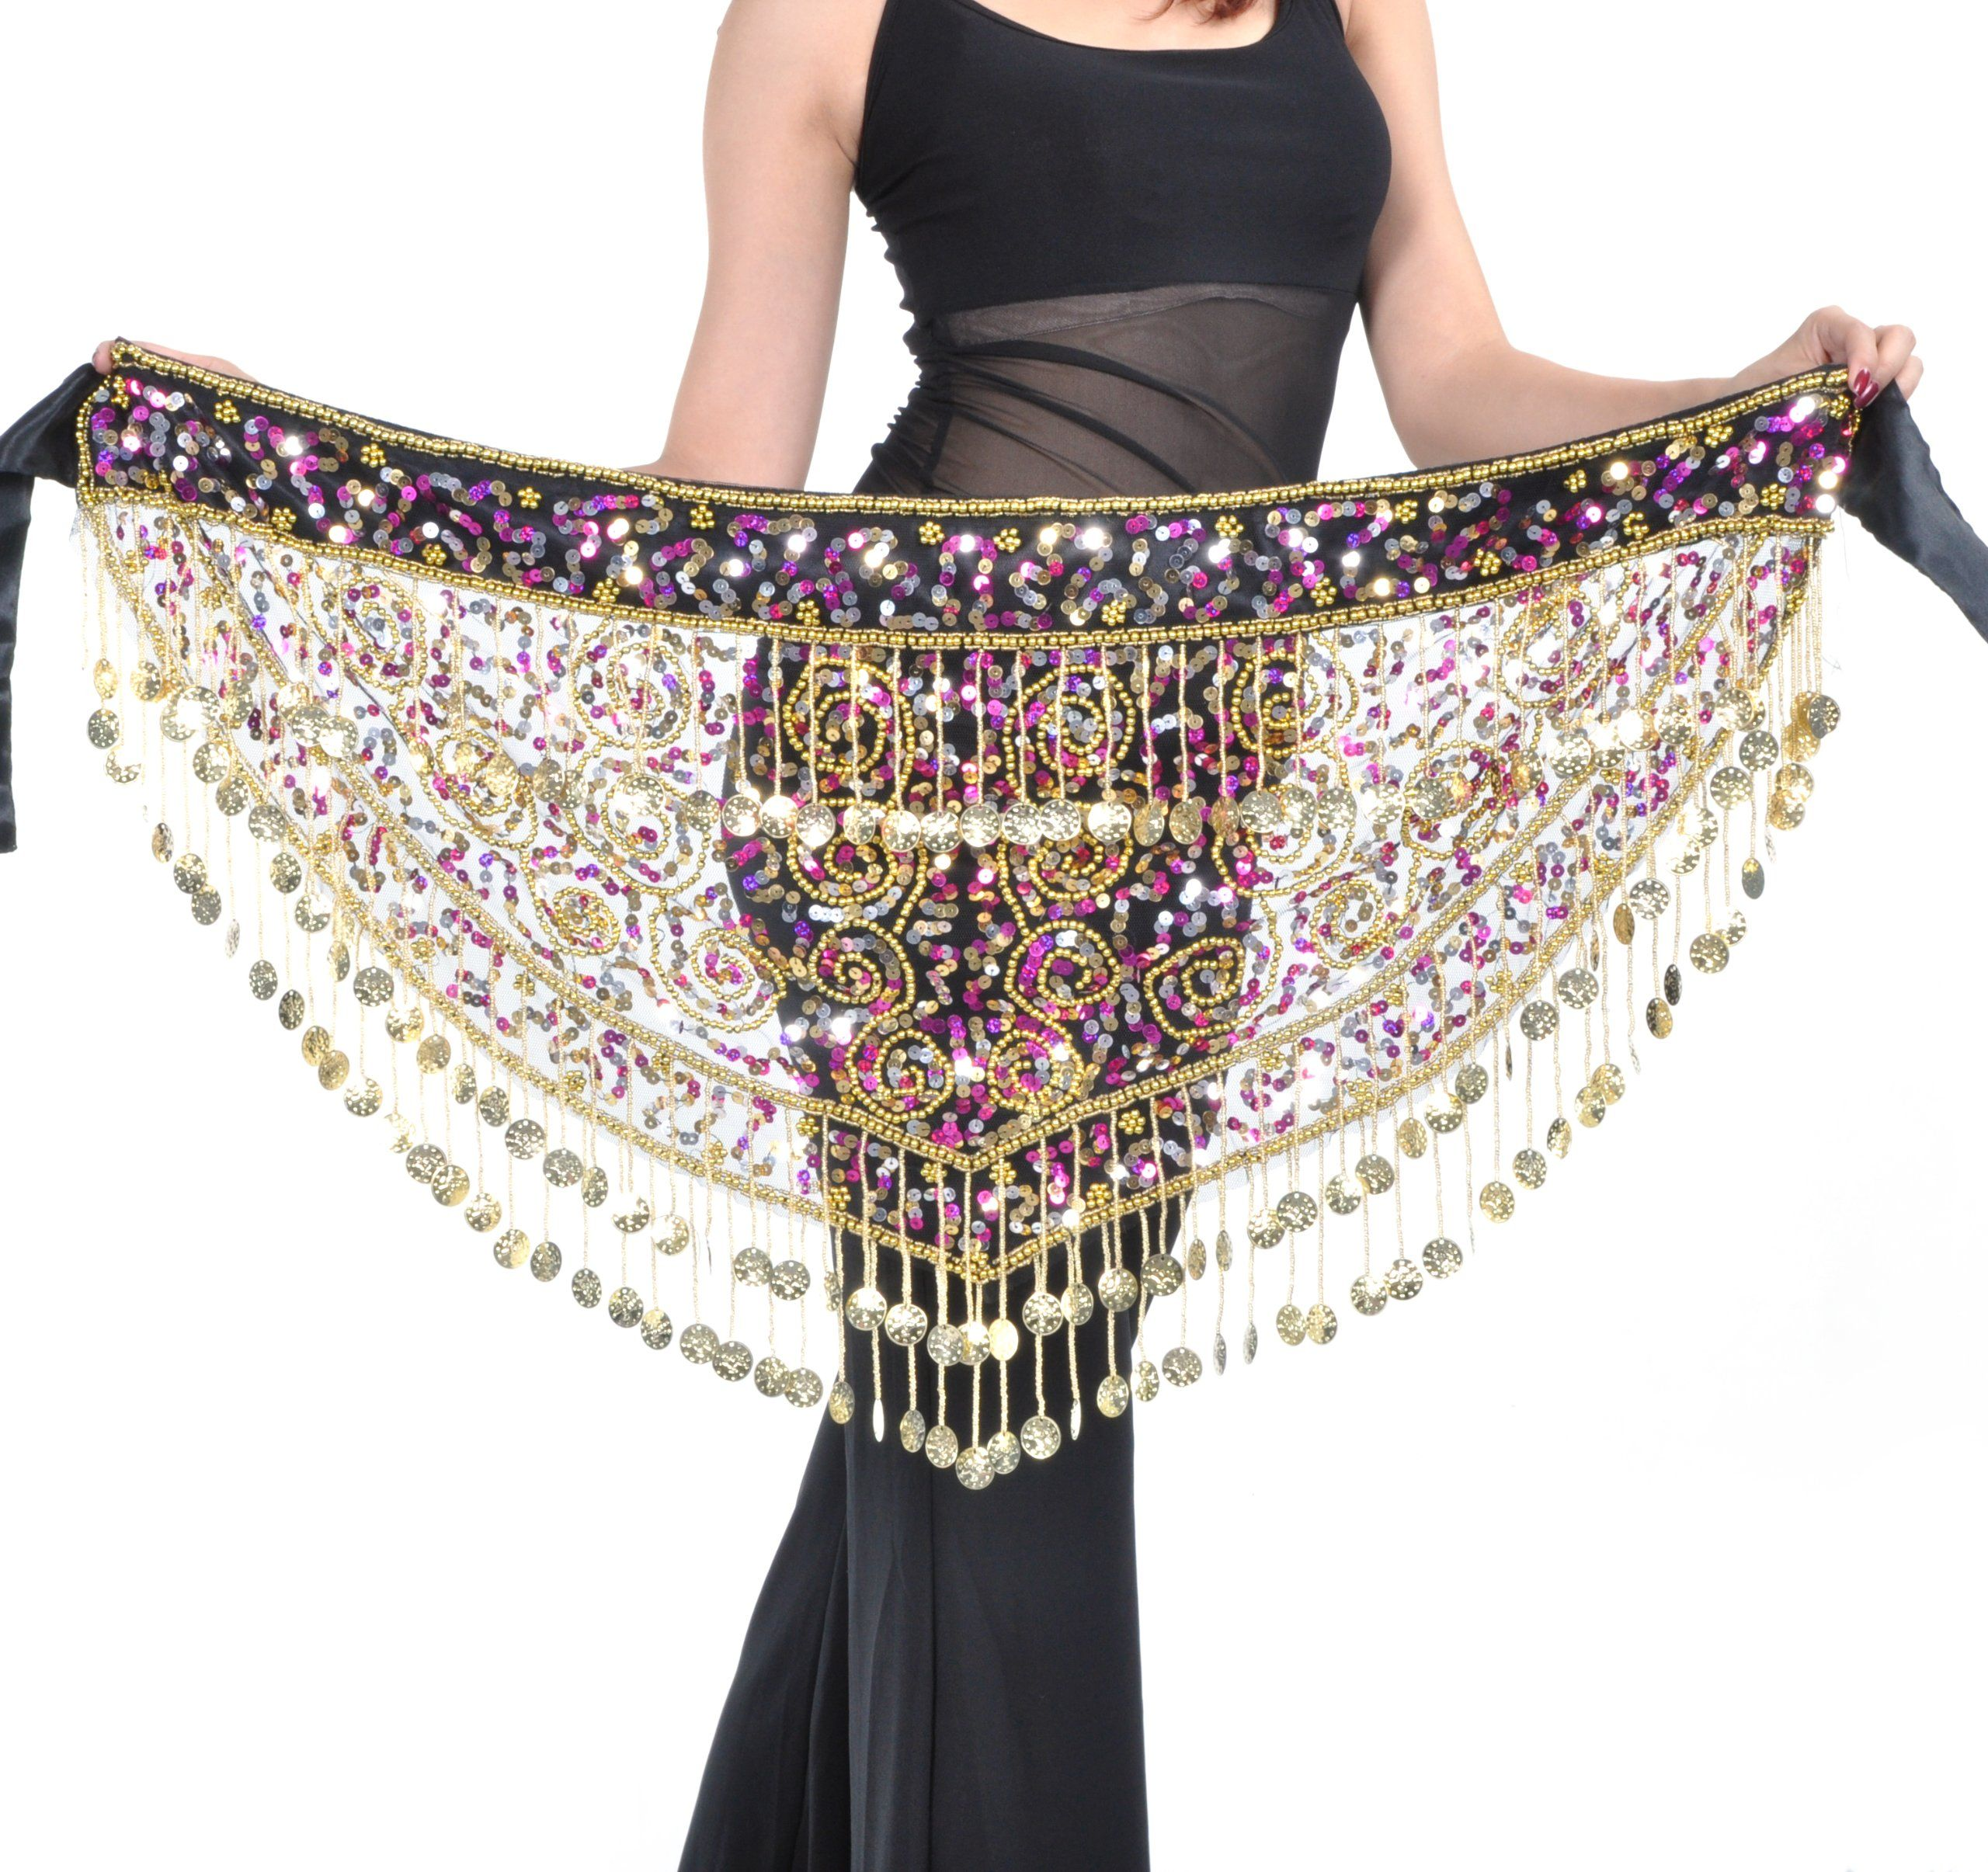 c9a36e968 BellyLady Belly Dance Gold Coins Costume Hip scarf, Tribal Egyptian Coin  Belt